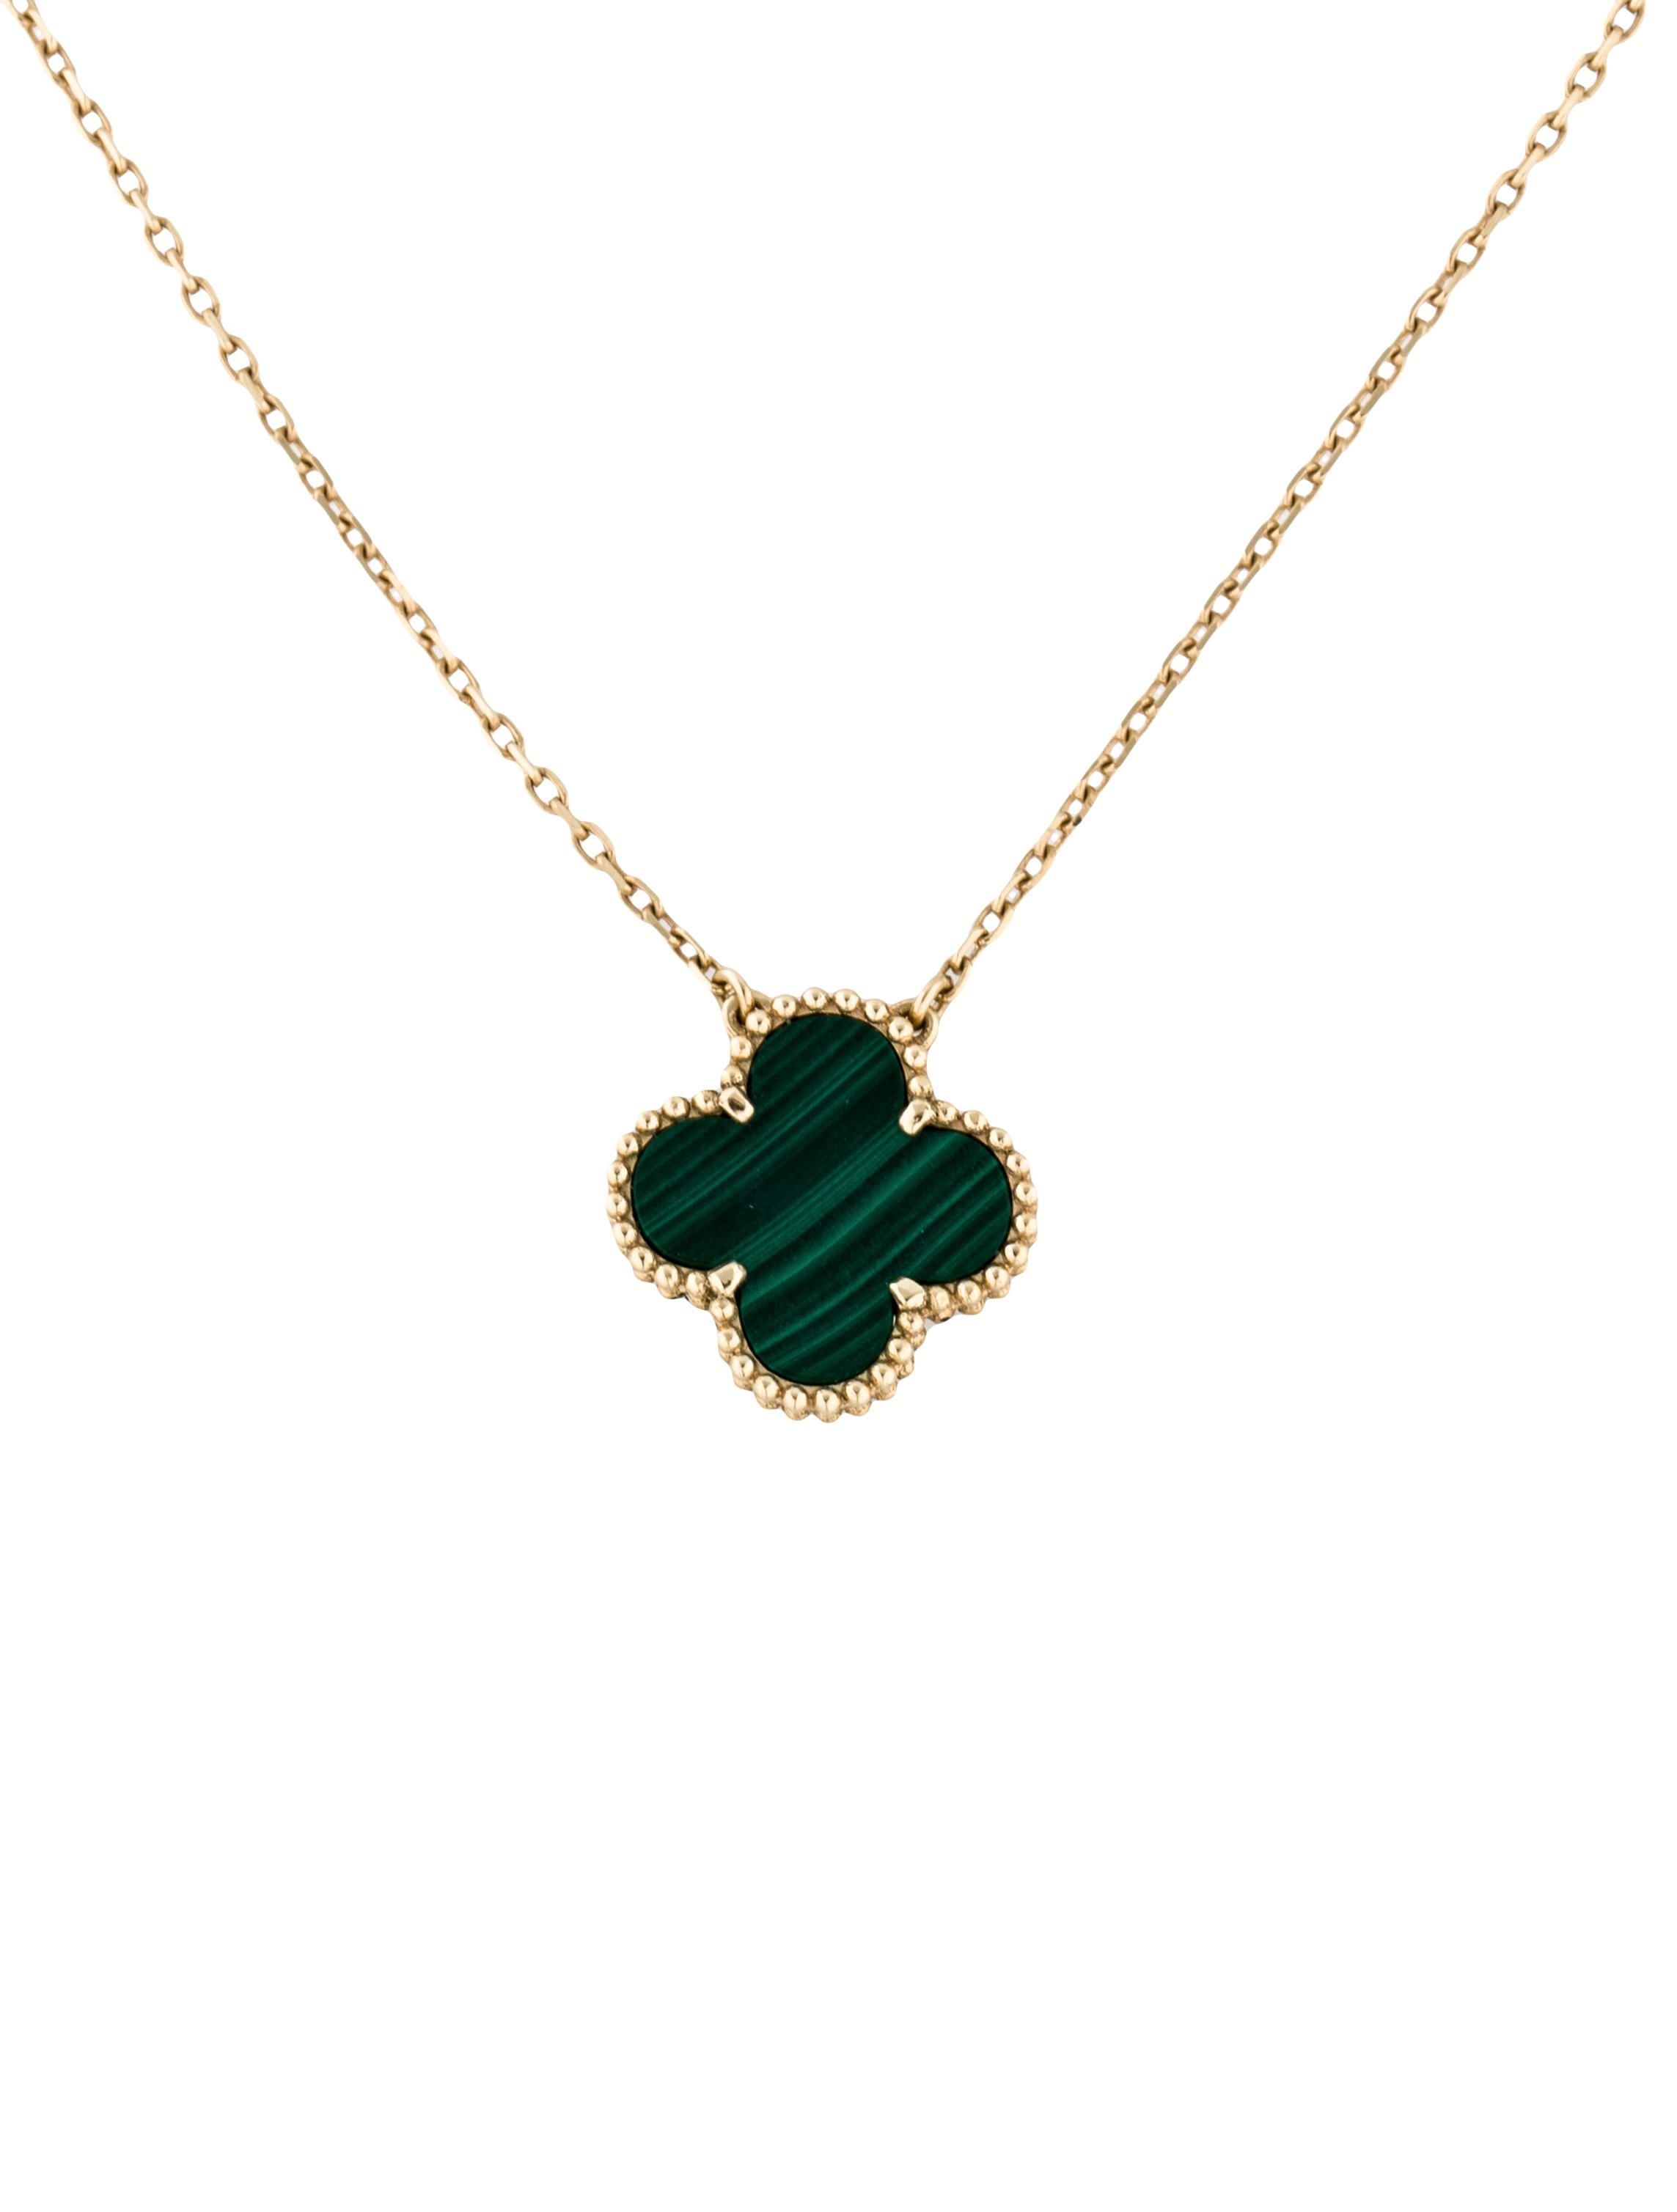 alhambra muse pendant fashions arpels van sweet cleef products necklace image